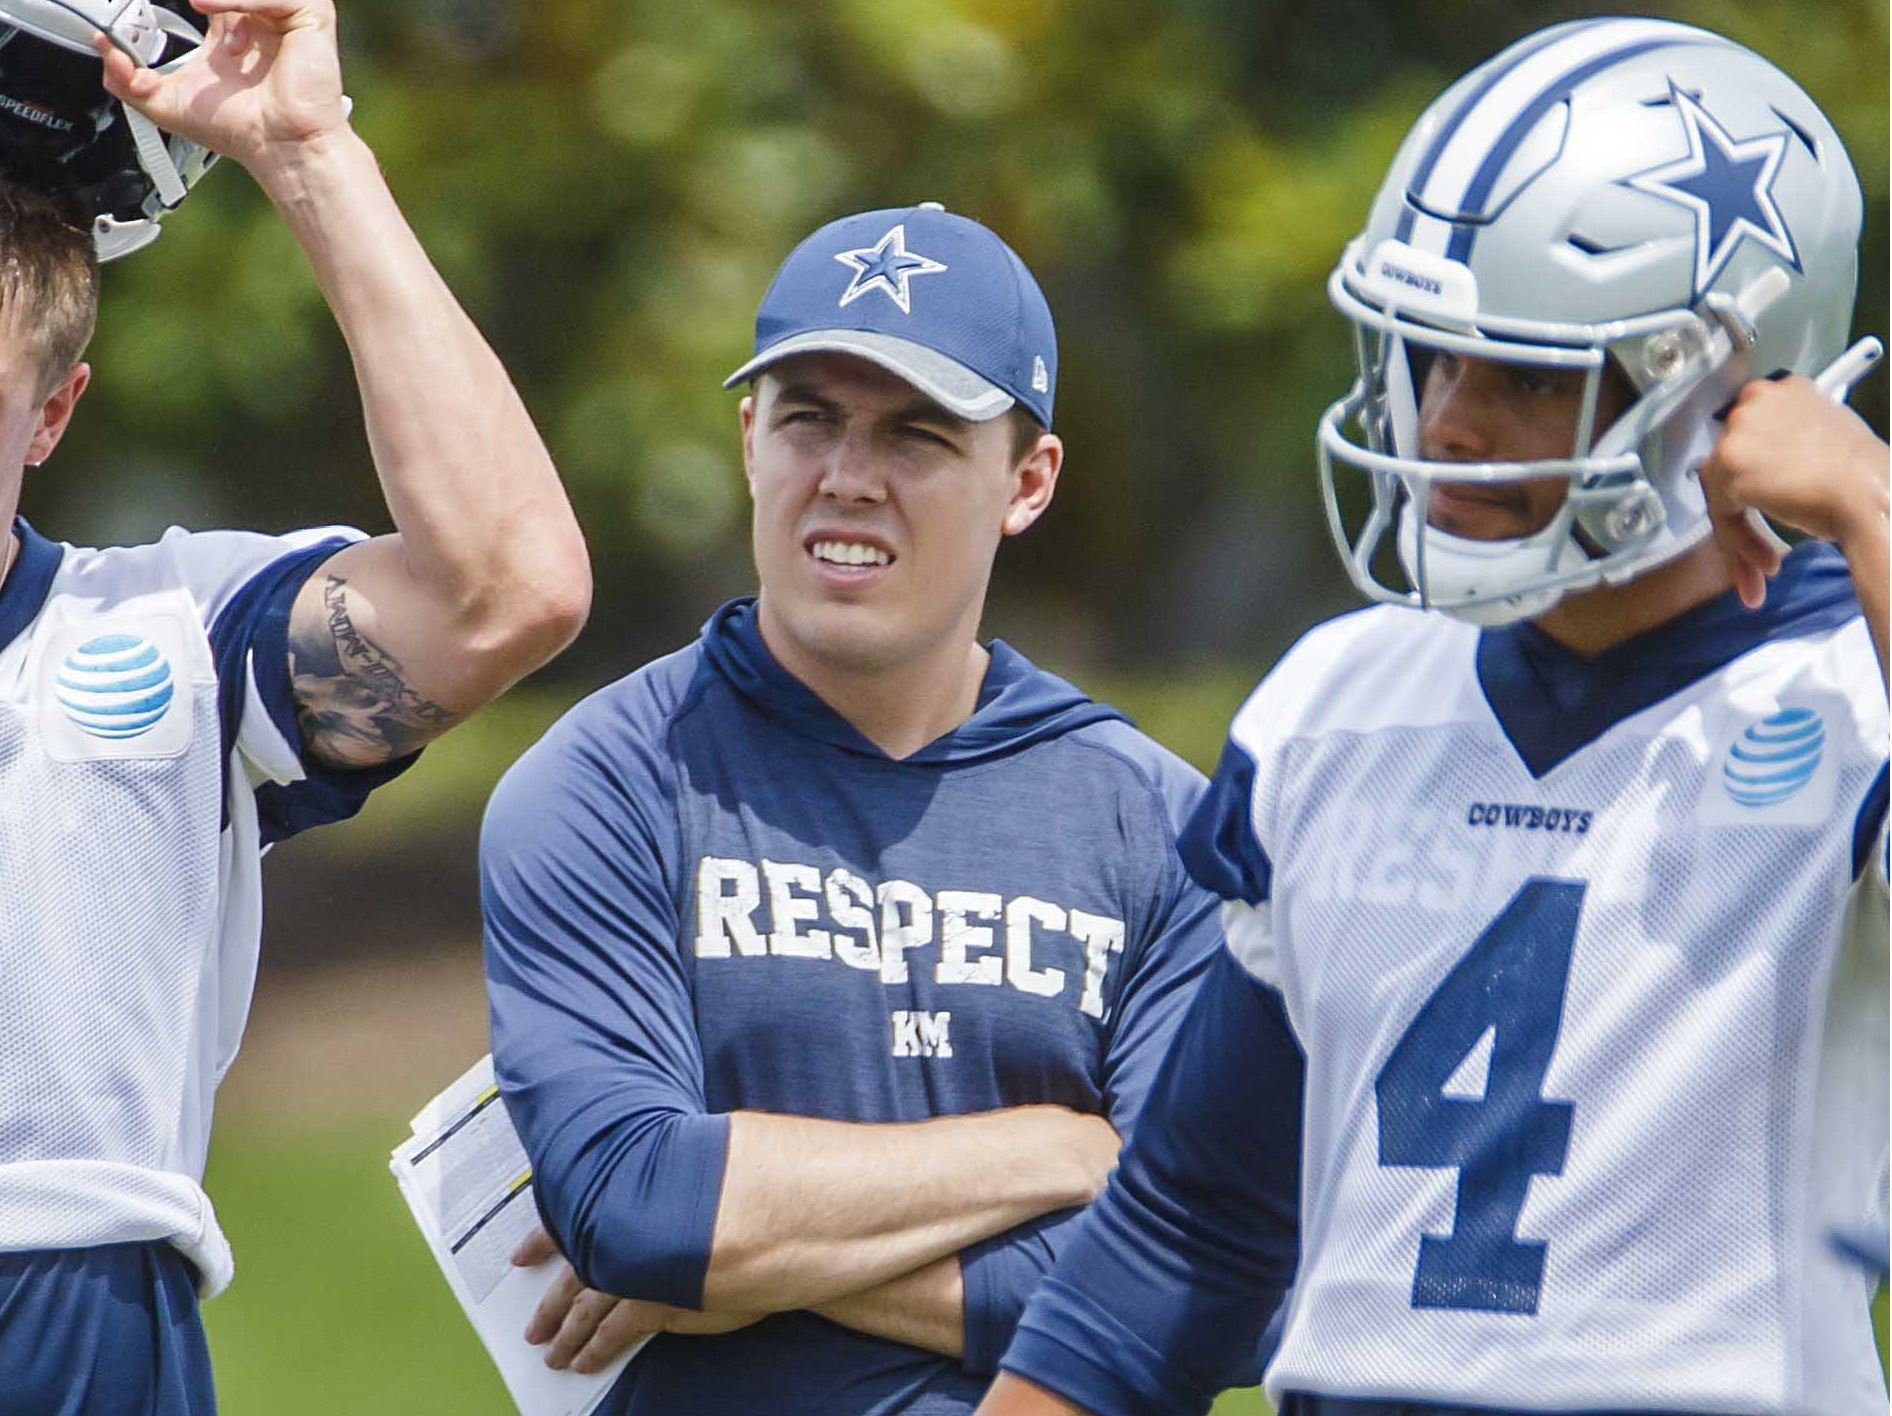 Dallas Cowboys 2019 Training Camp: Top 5 Storylines to Follow